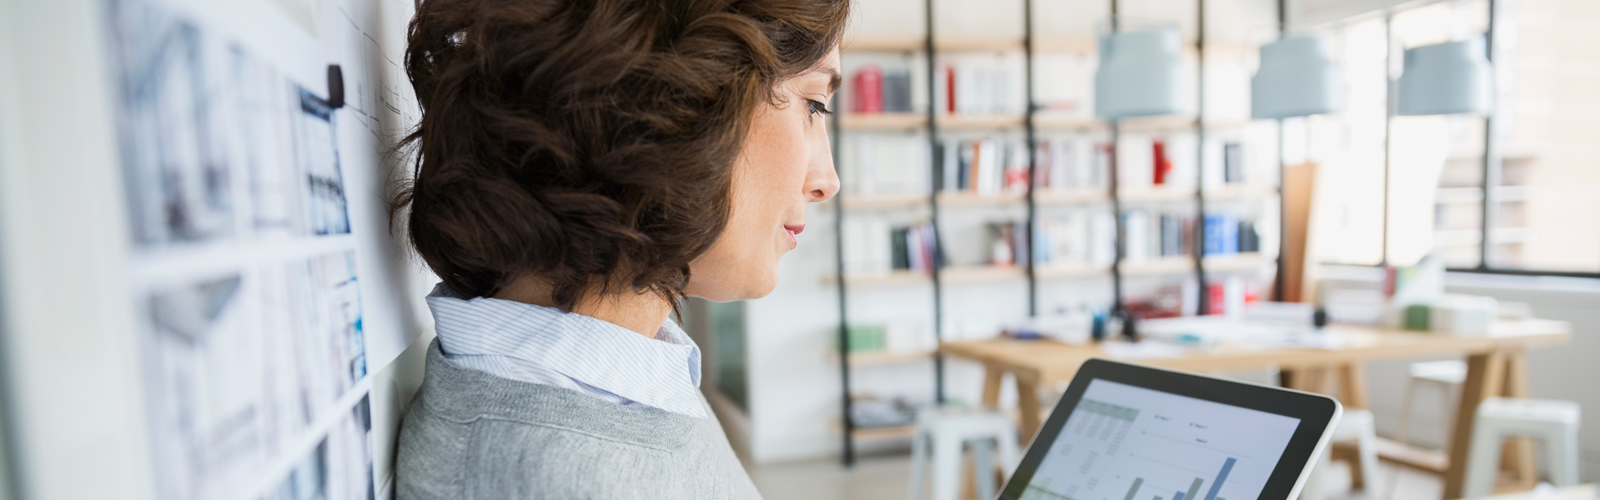 Female professional in an office, leaning against a wall and looking at a tablet.